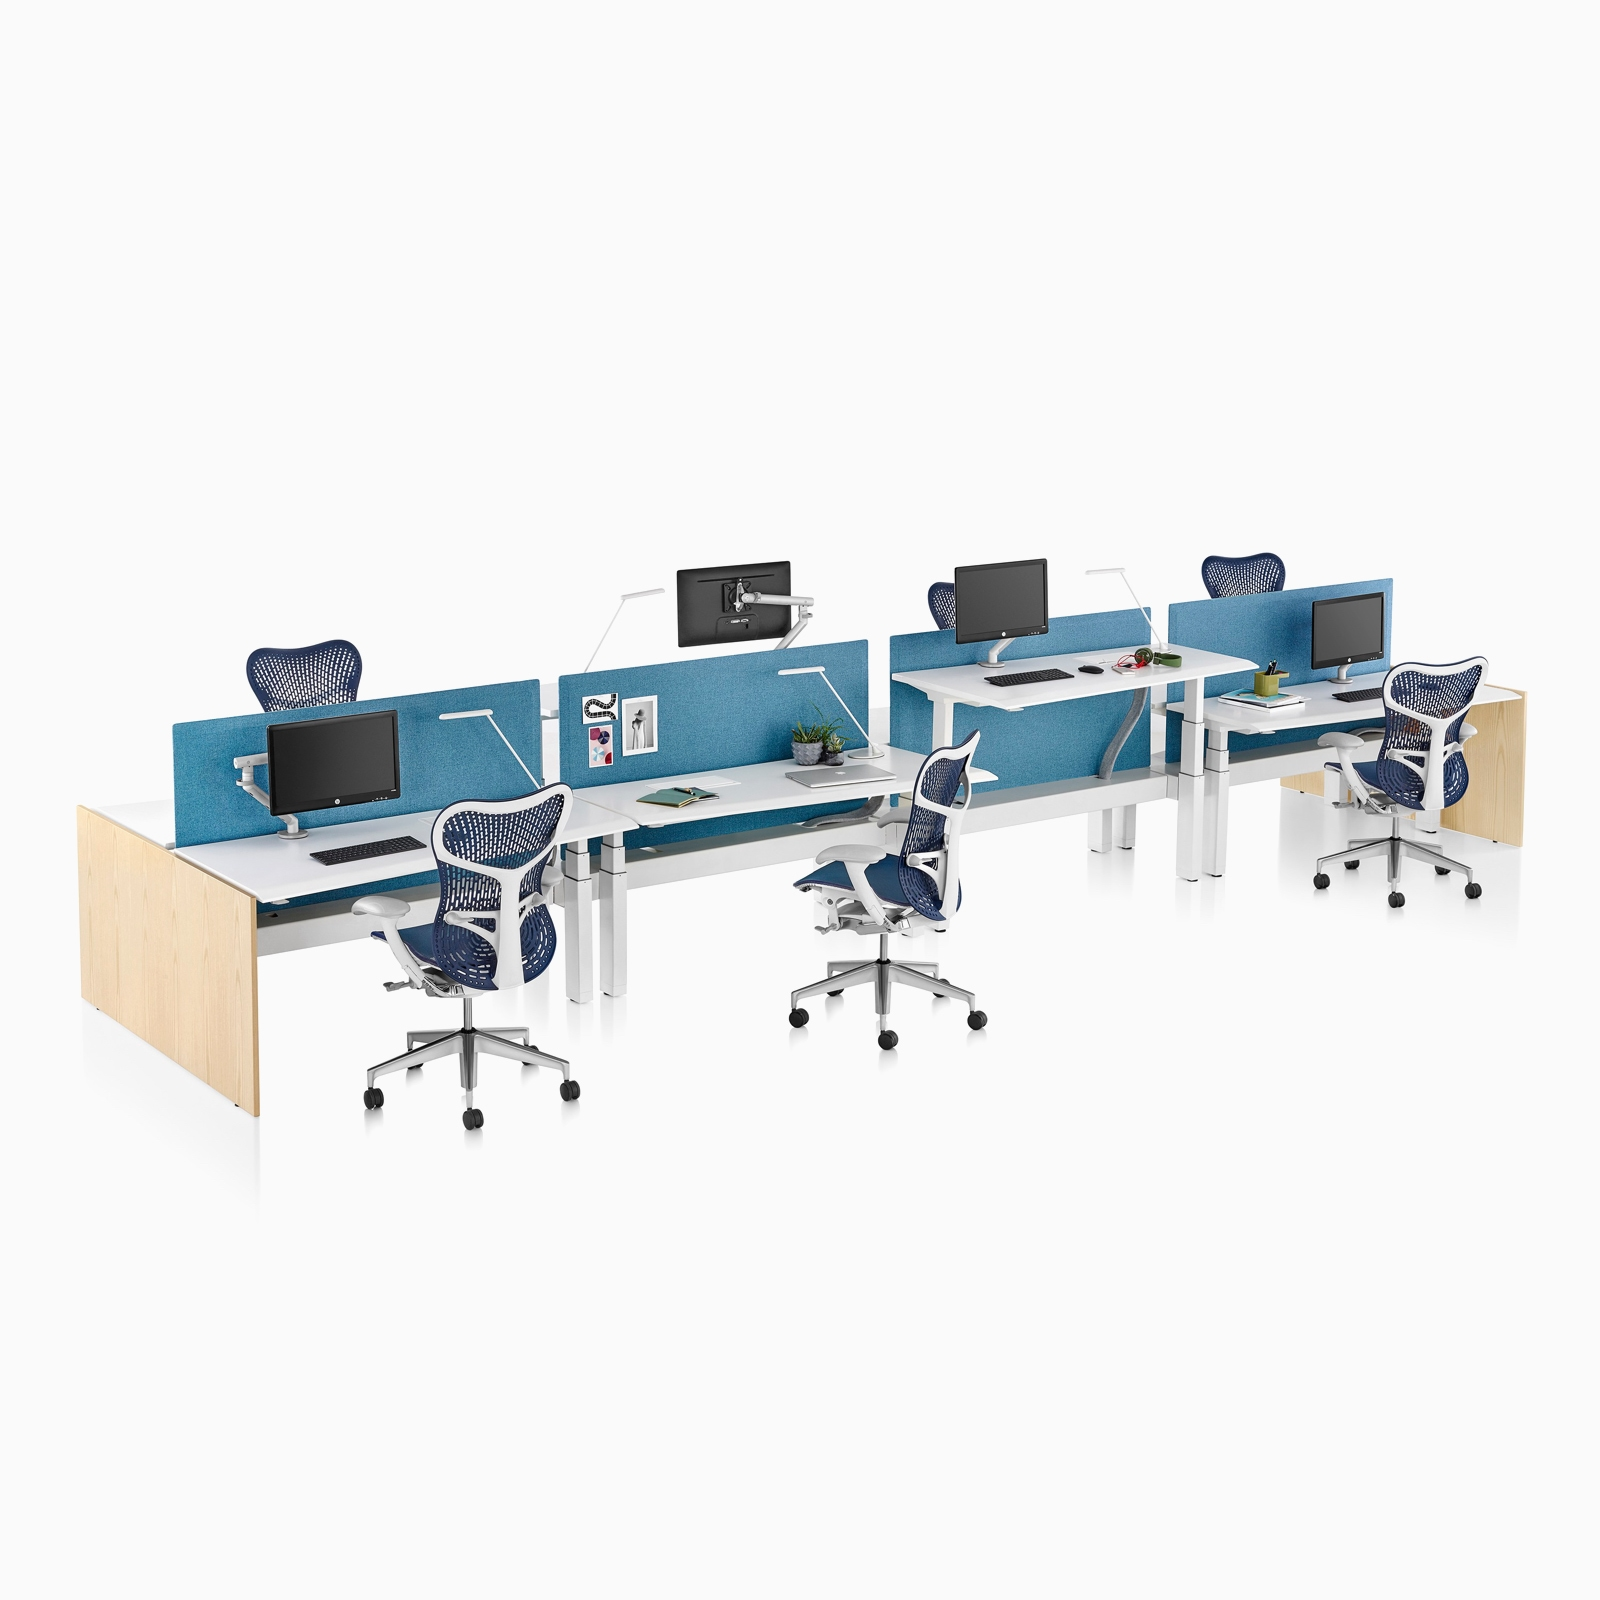 A side view of four Renew Link sit-to-stand desks with blue Sayl Chairs and divided by a blue screen. Select to go to the Renew Link product page.